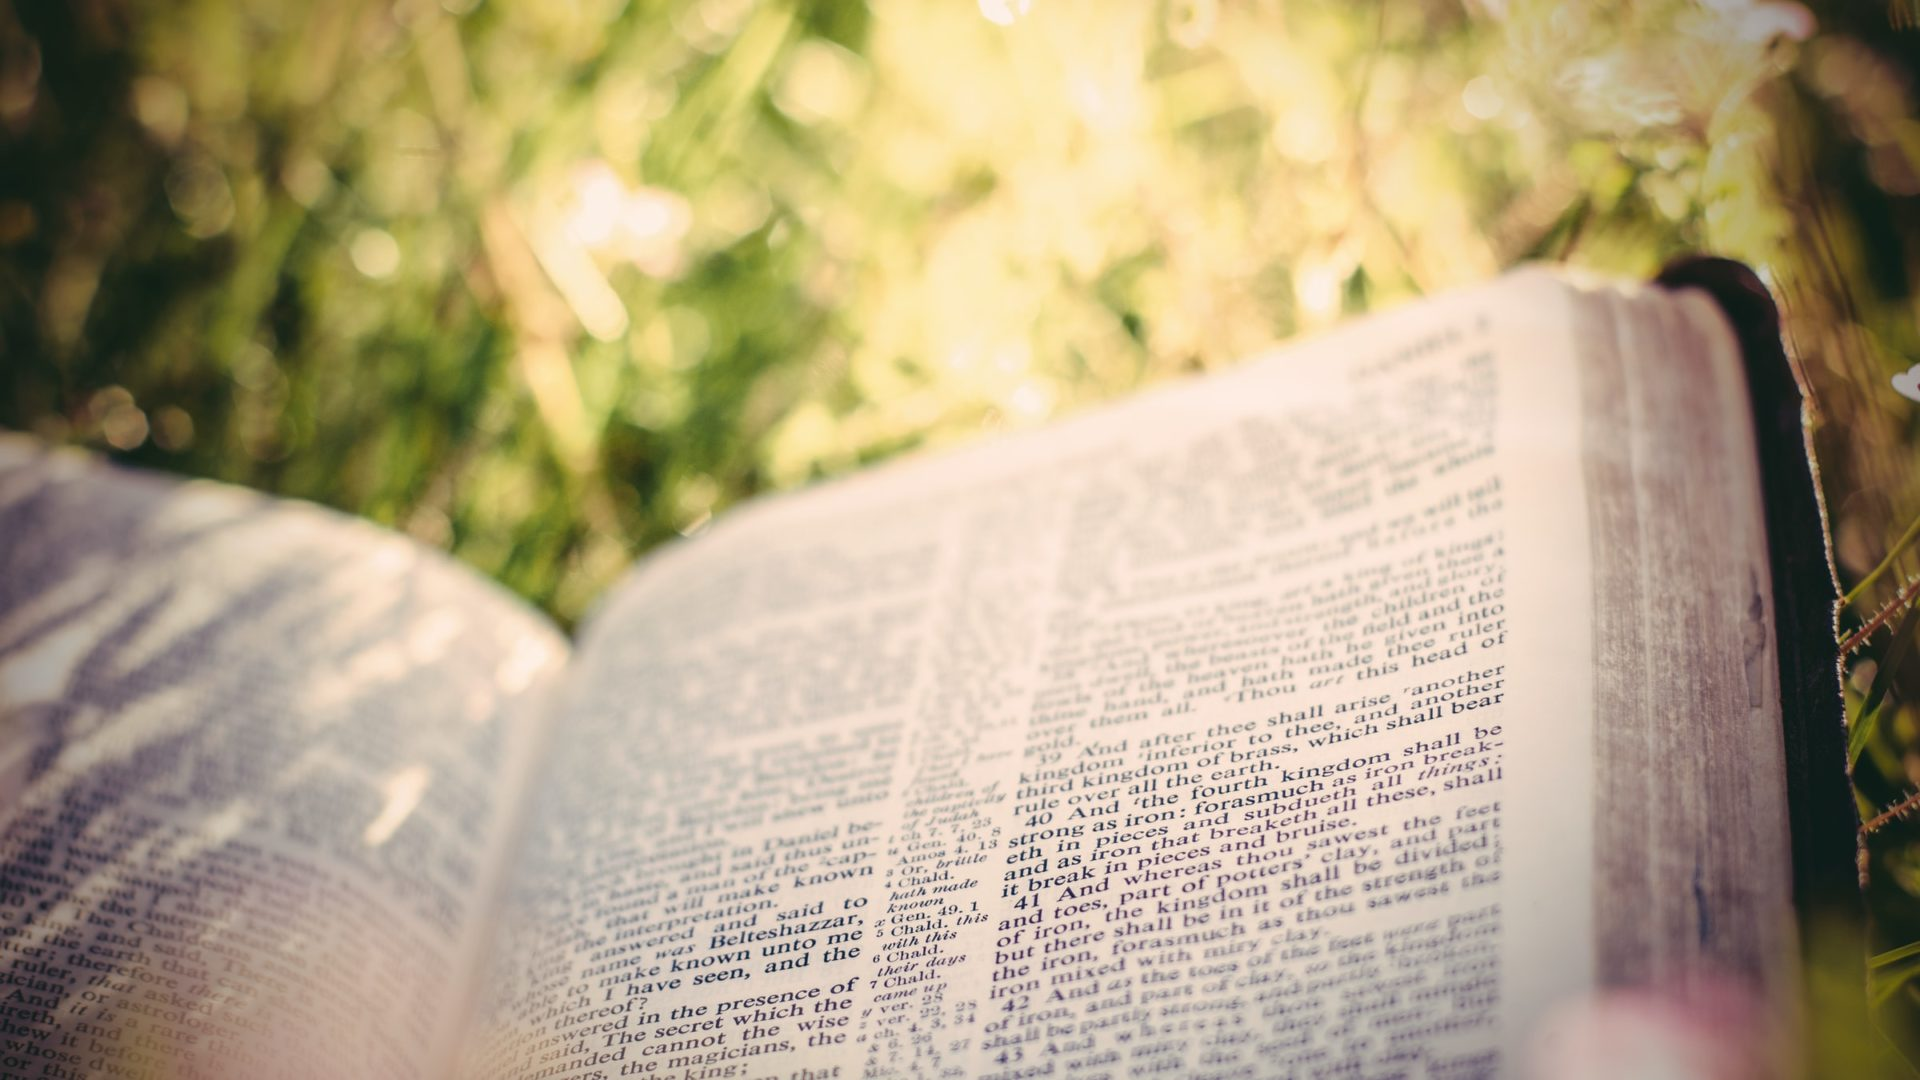 Bible opened in the grass